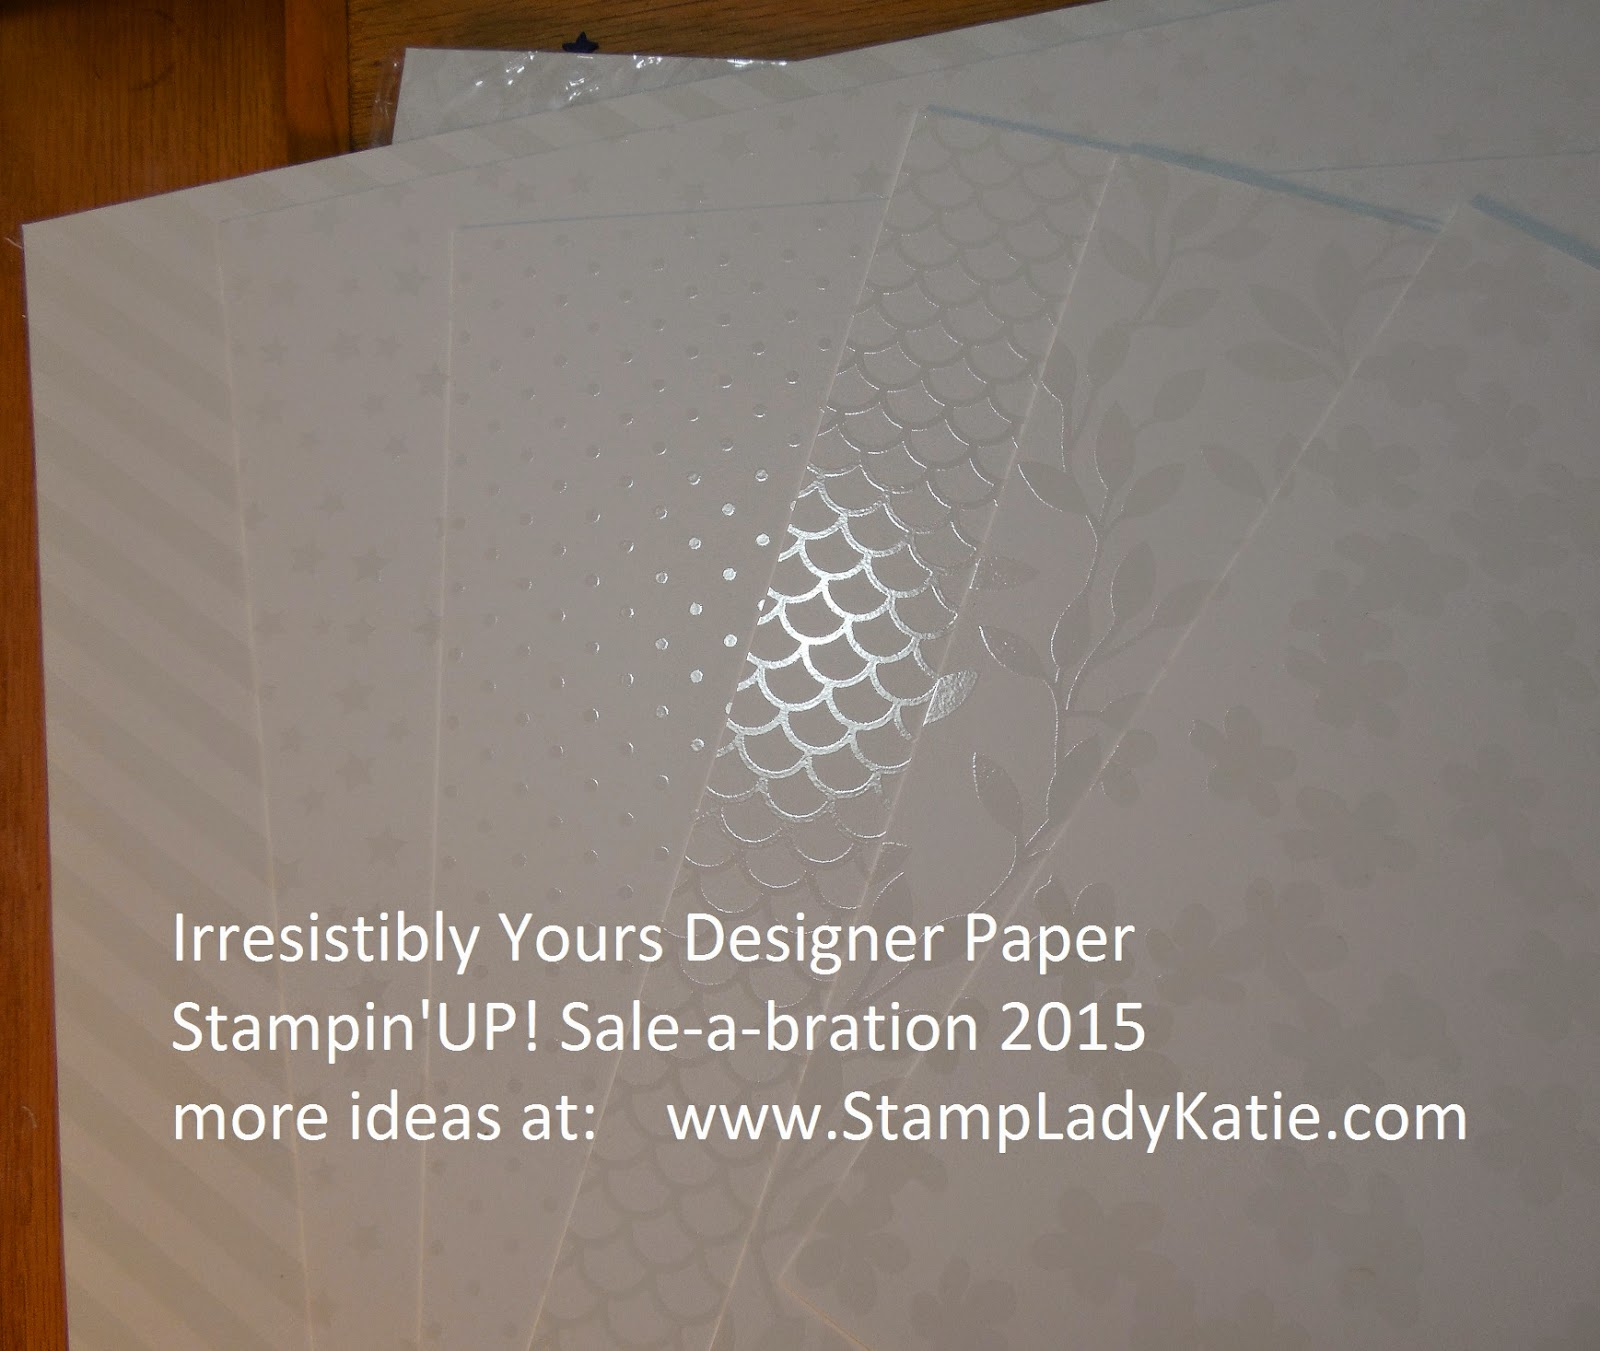 Stampin'UP!'s Irresistibly Yours Designer Paper for Sale-a-bration 2015